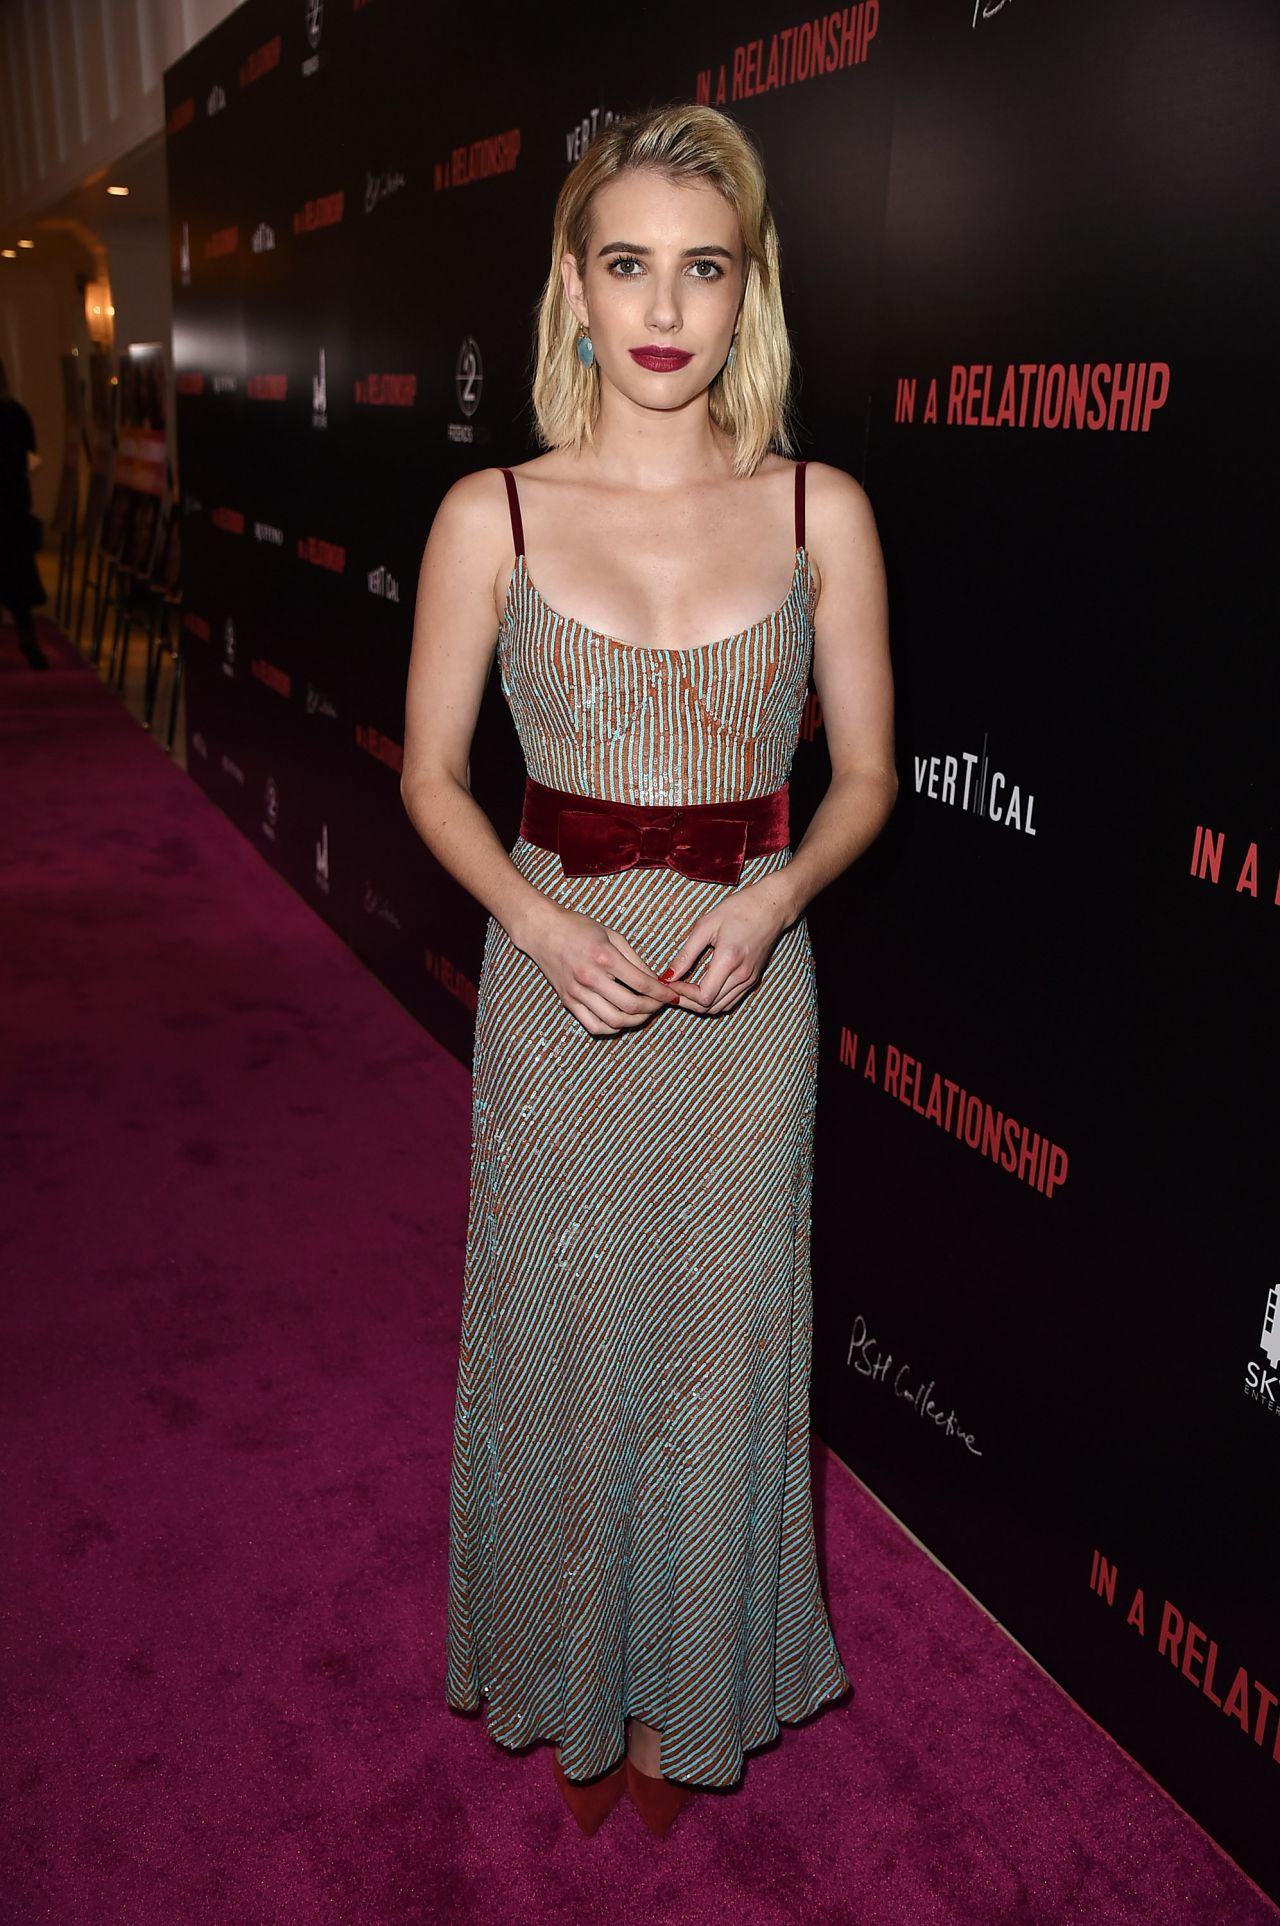 https://celebmafia.com/wp-content/uploads/2018/10/emma-roberts-in-a-relationship-premiere-in-west-hollywood-8.jpg